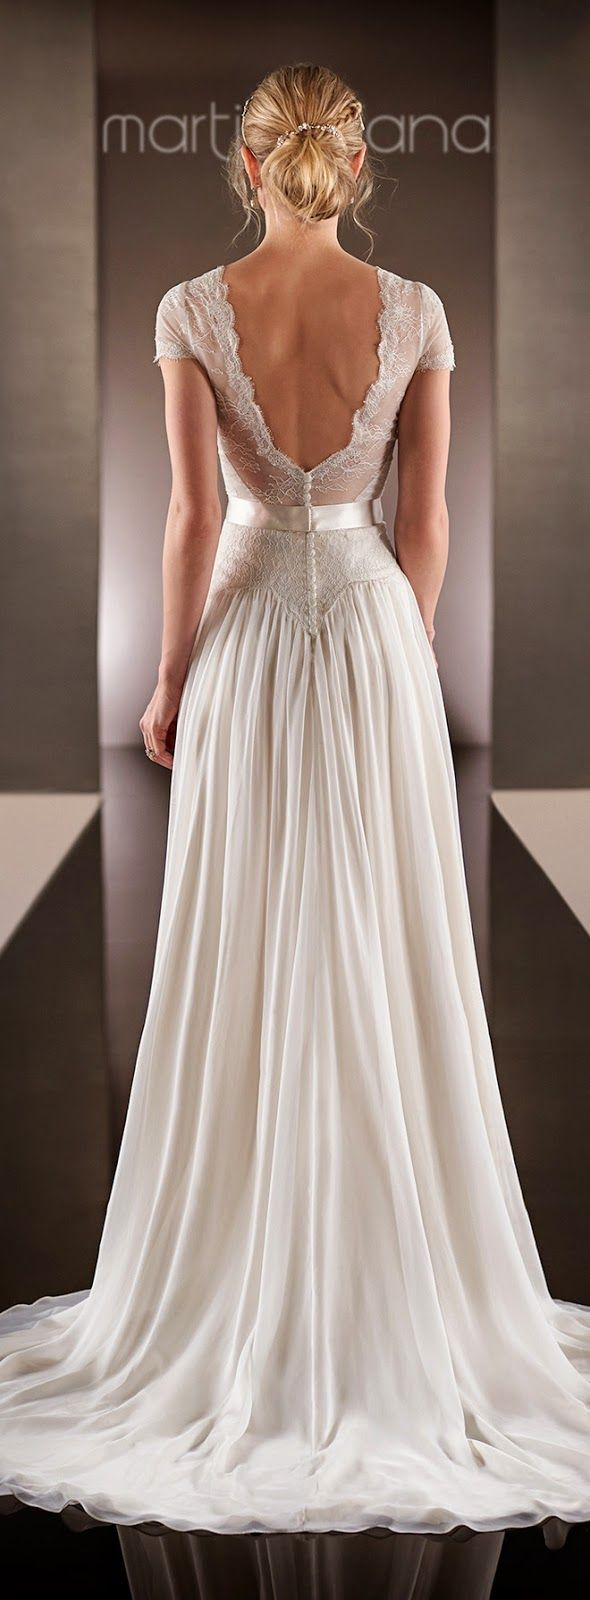 Mariage - Wedding Couture